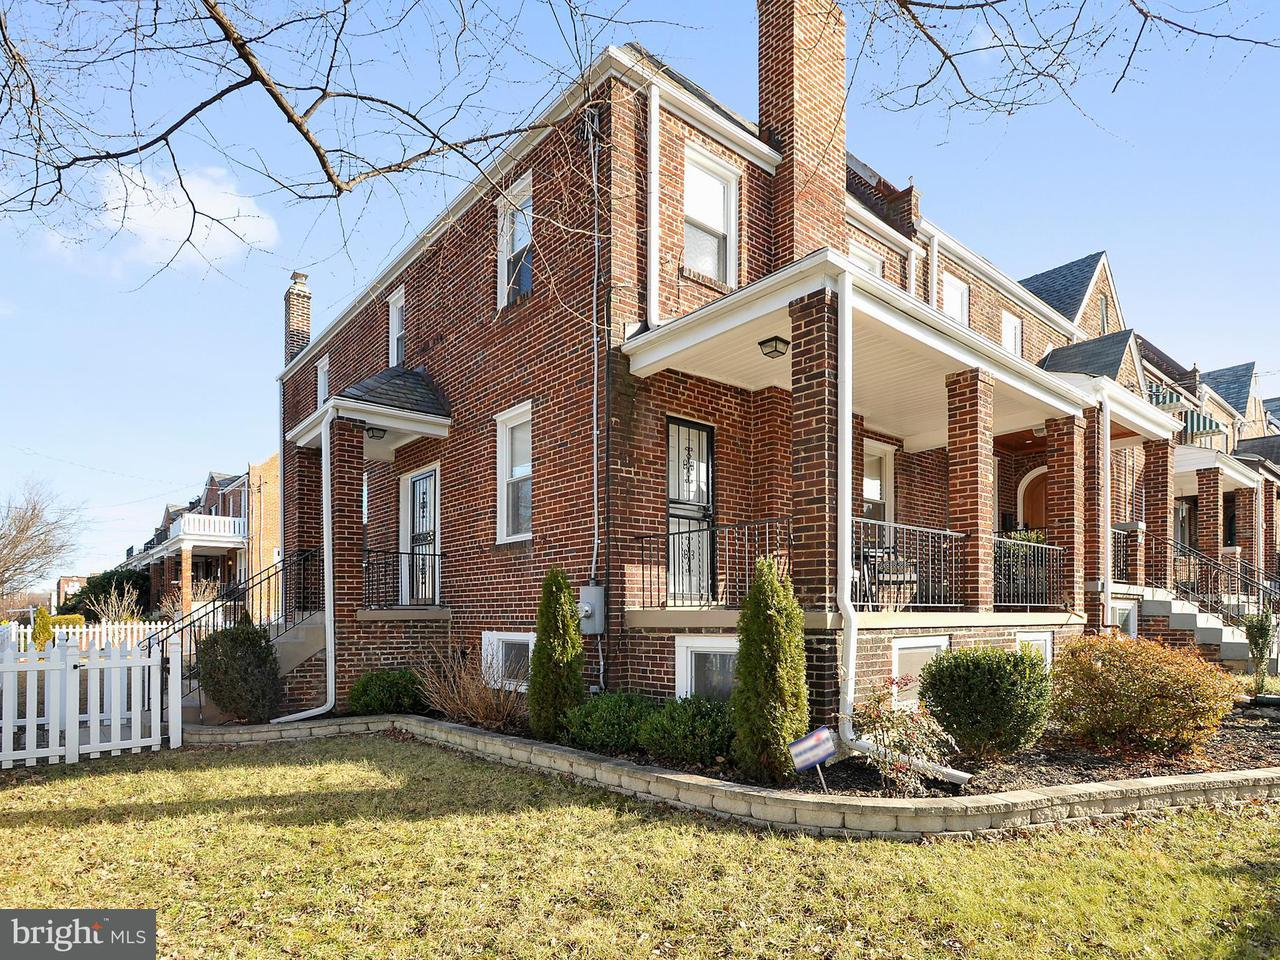 Single Family for Sale at 260 Gallatin St NW Washington, District Of Columbia 20011 United States